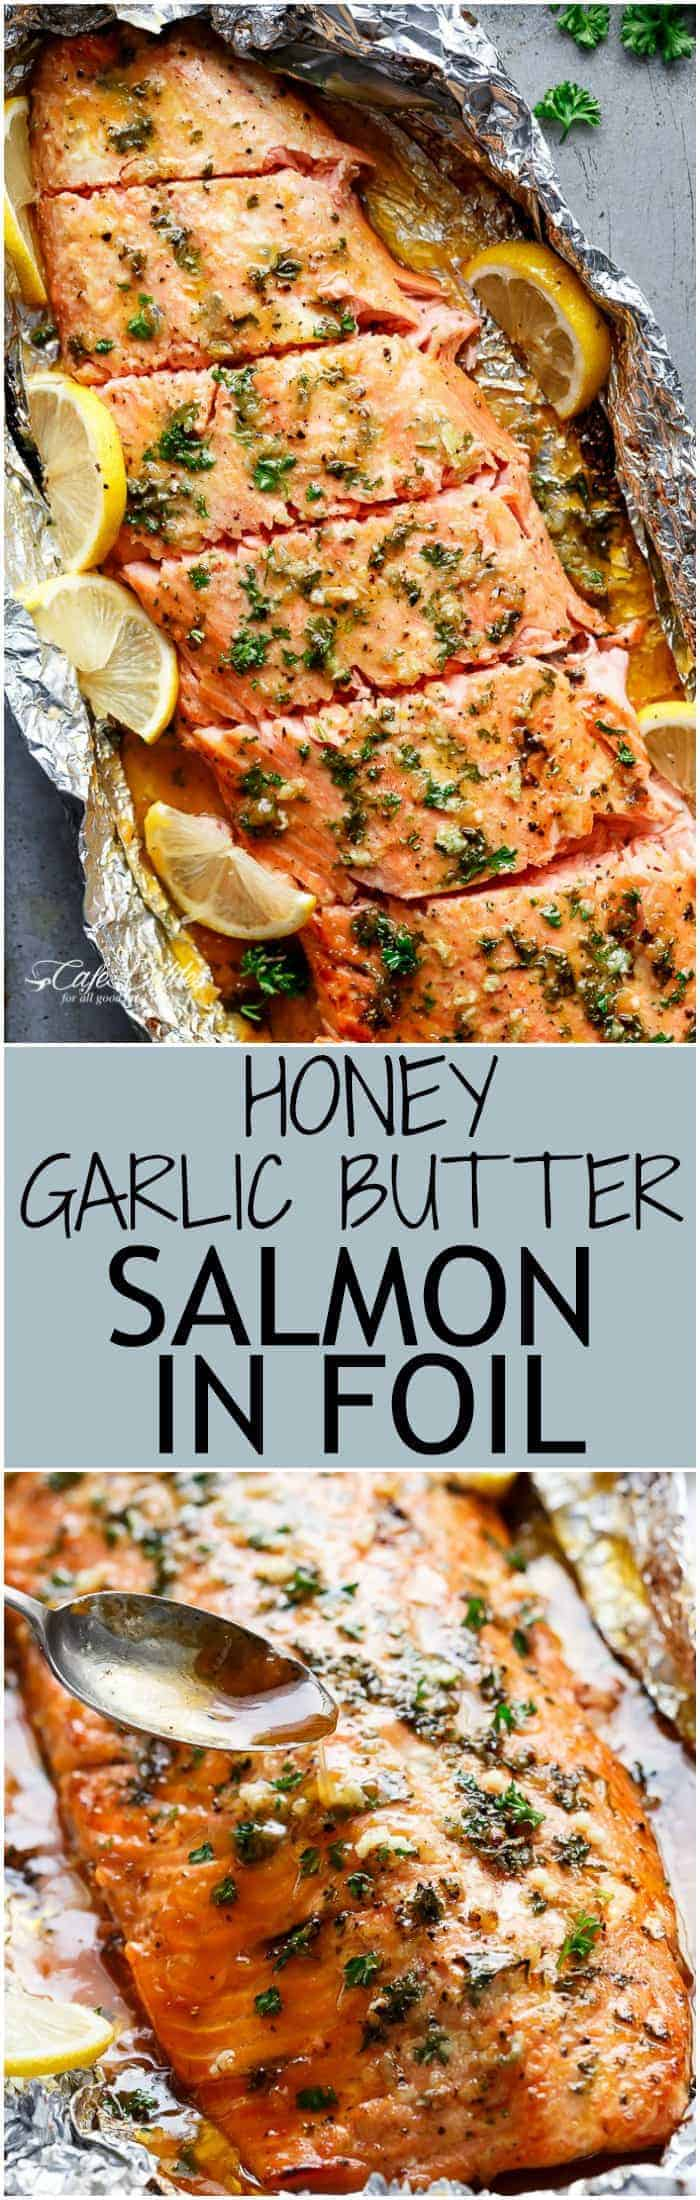 Honey Garlic Butter Salmon In Foil in under 20 minutes, then broiled (or grilled) for that extra golden, crispy and caramelised finish! So simple and only 4 main ingredients, with no mess to clean up! | https://cafedelites.com